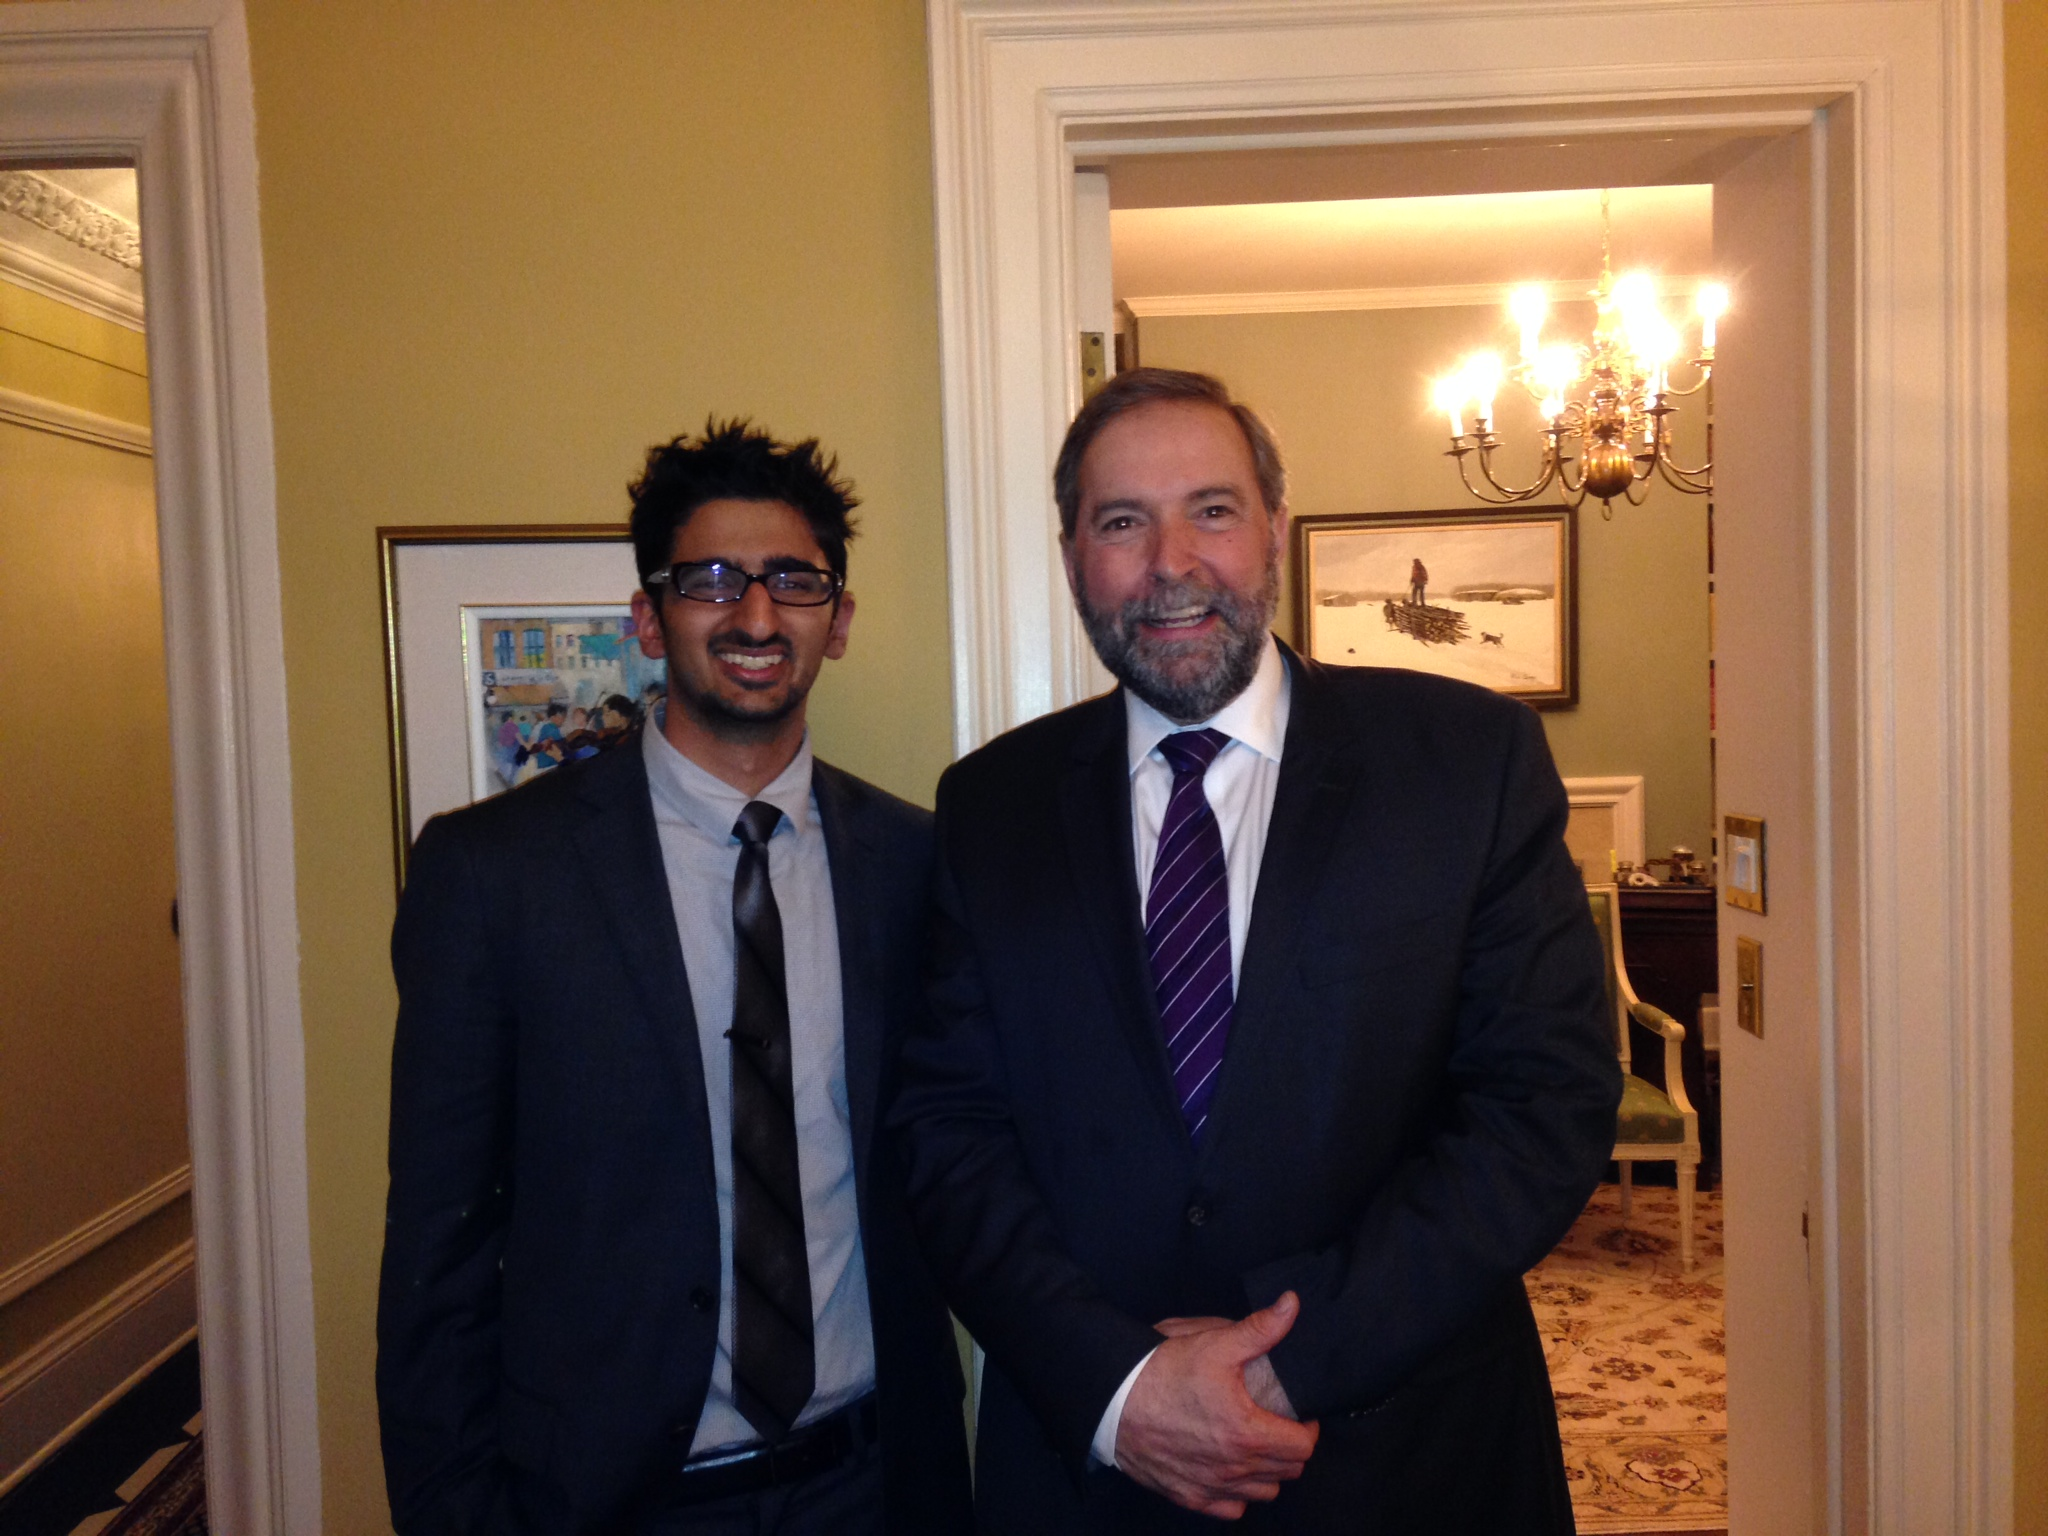 POST student Vik Saggu with the Leader of the Official Opposition, Tom Mulcair.